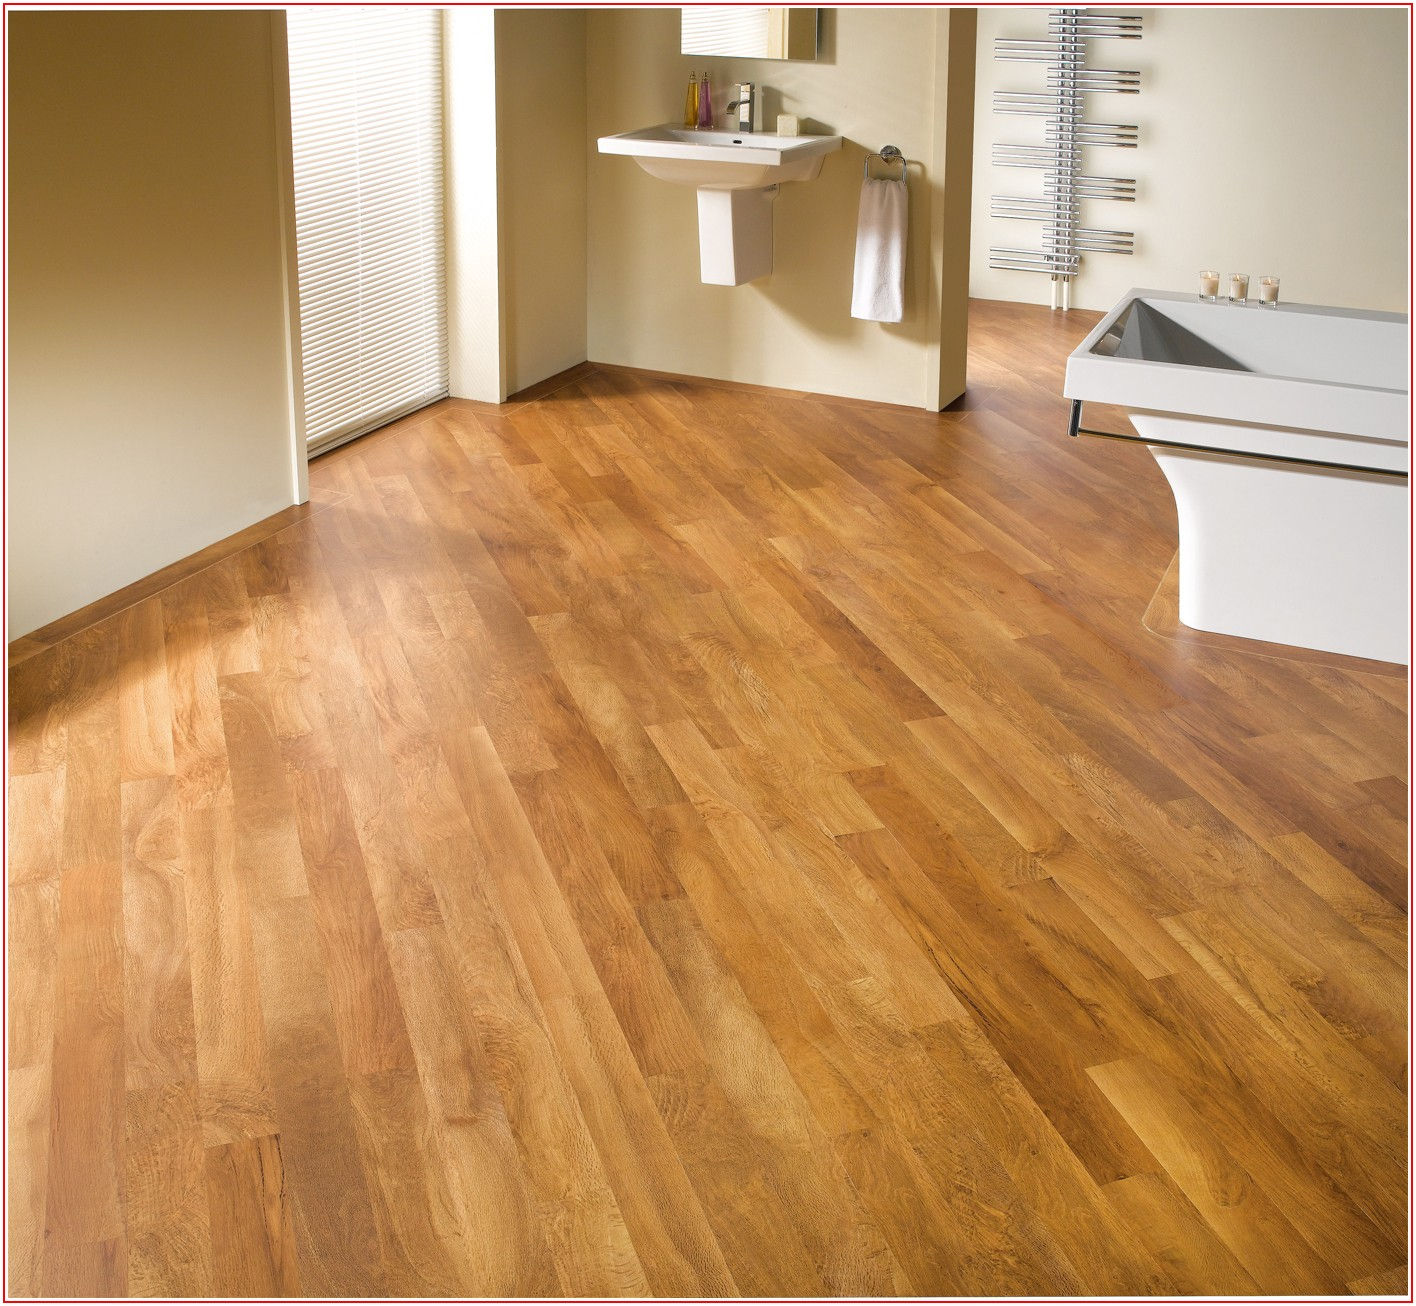 Warm Honey Oak Vinyl Flooring